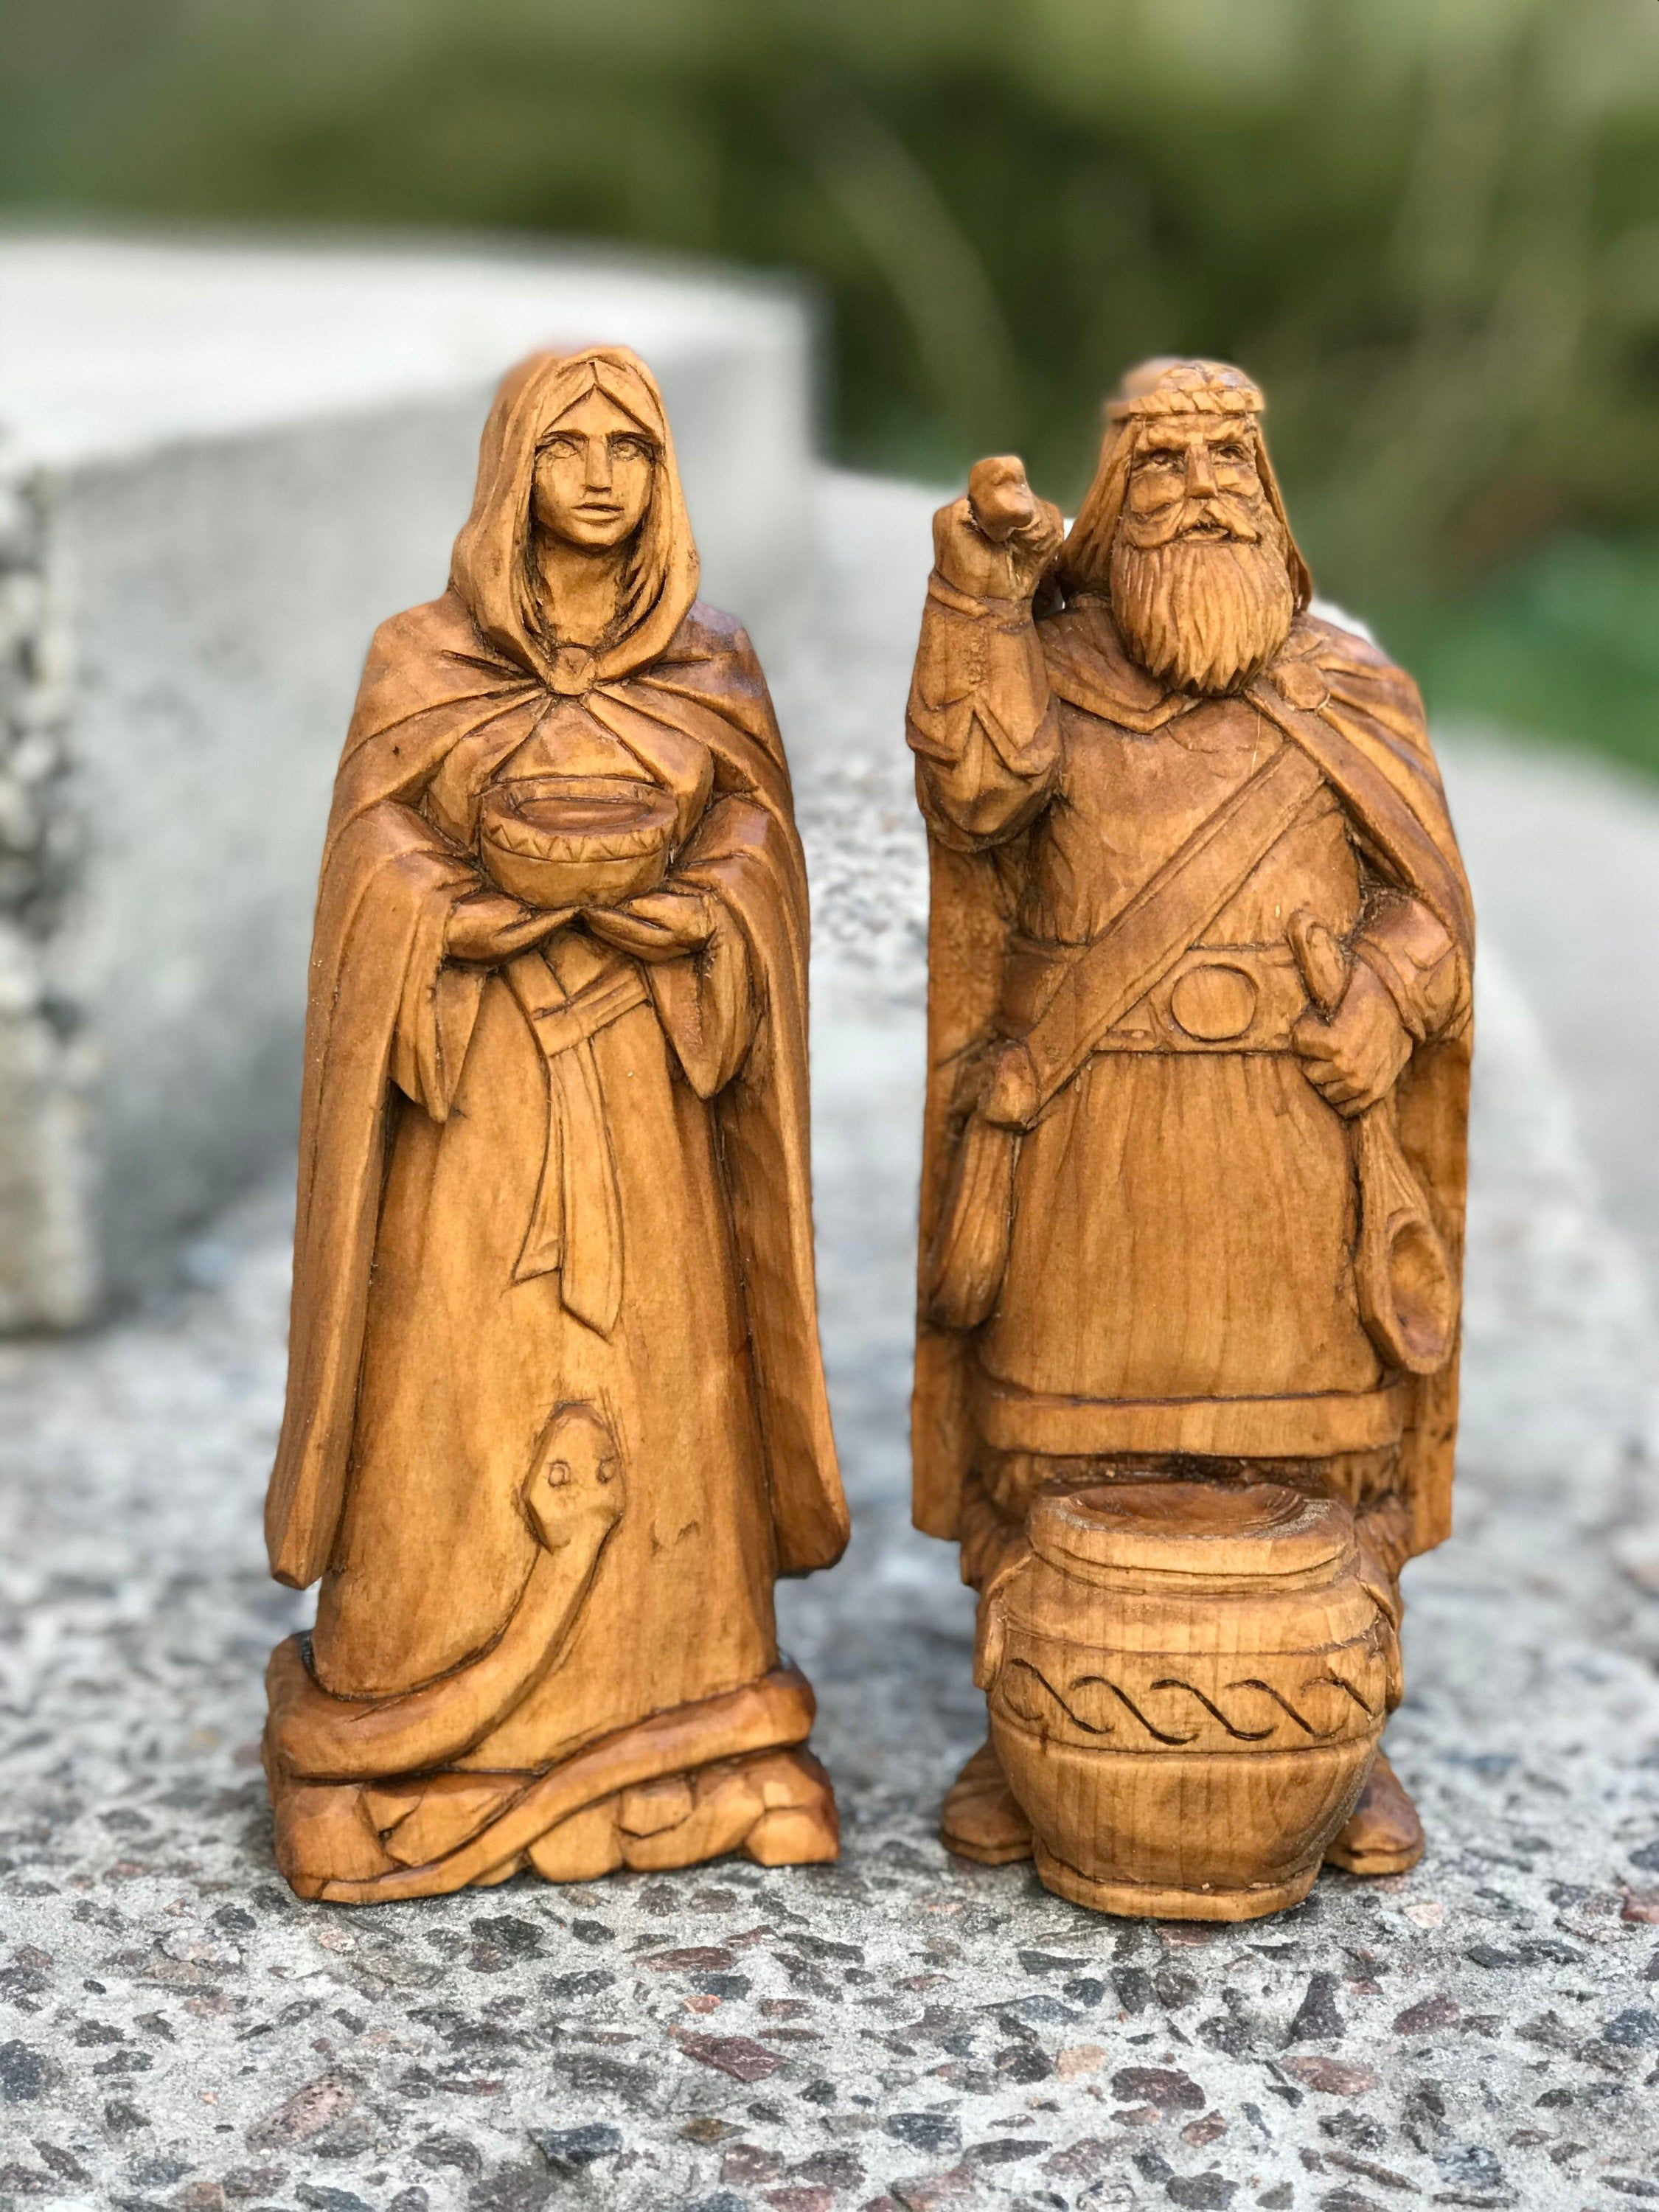 Pin on Statues of Gods and Goddesses, heathen, Norse, Asatru